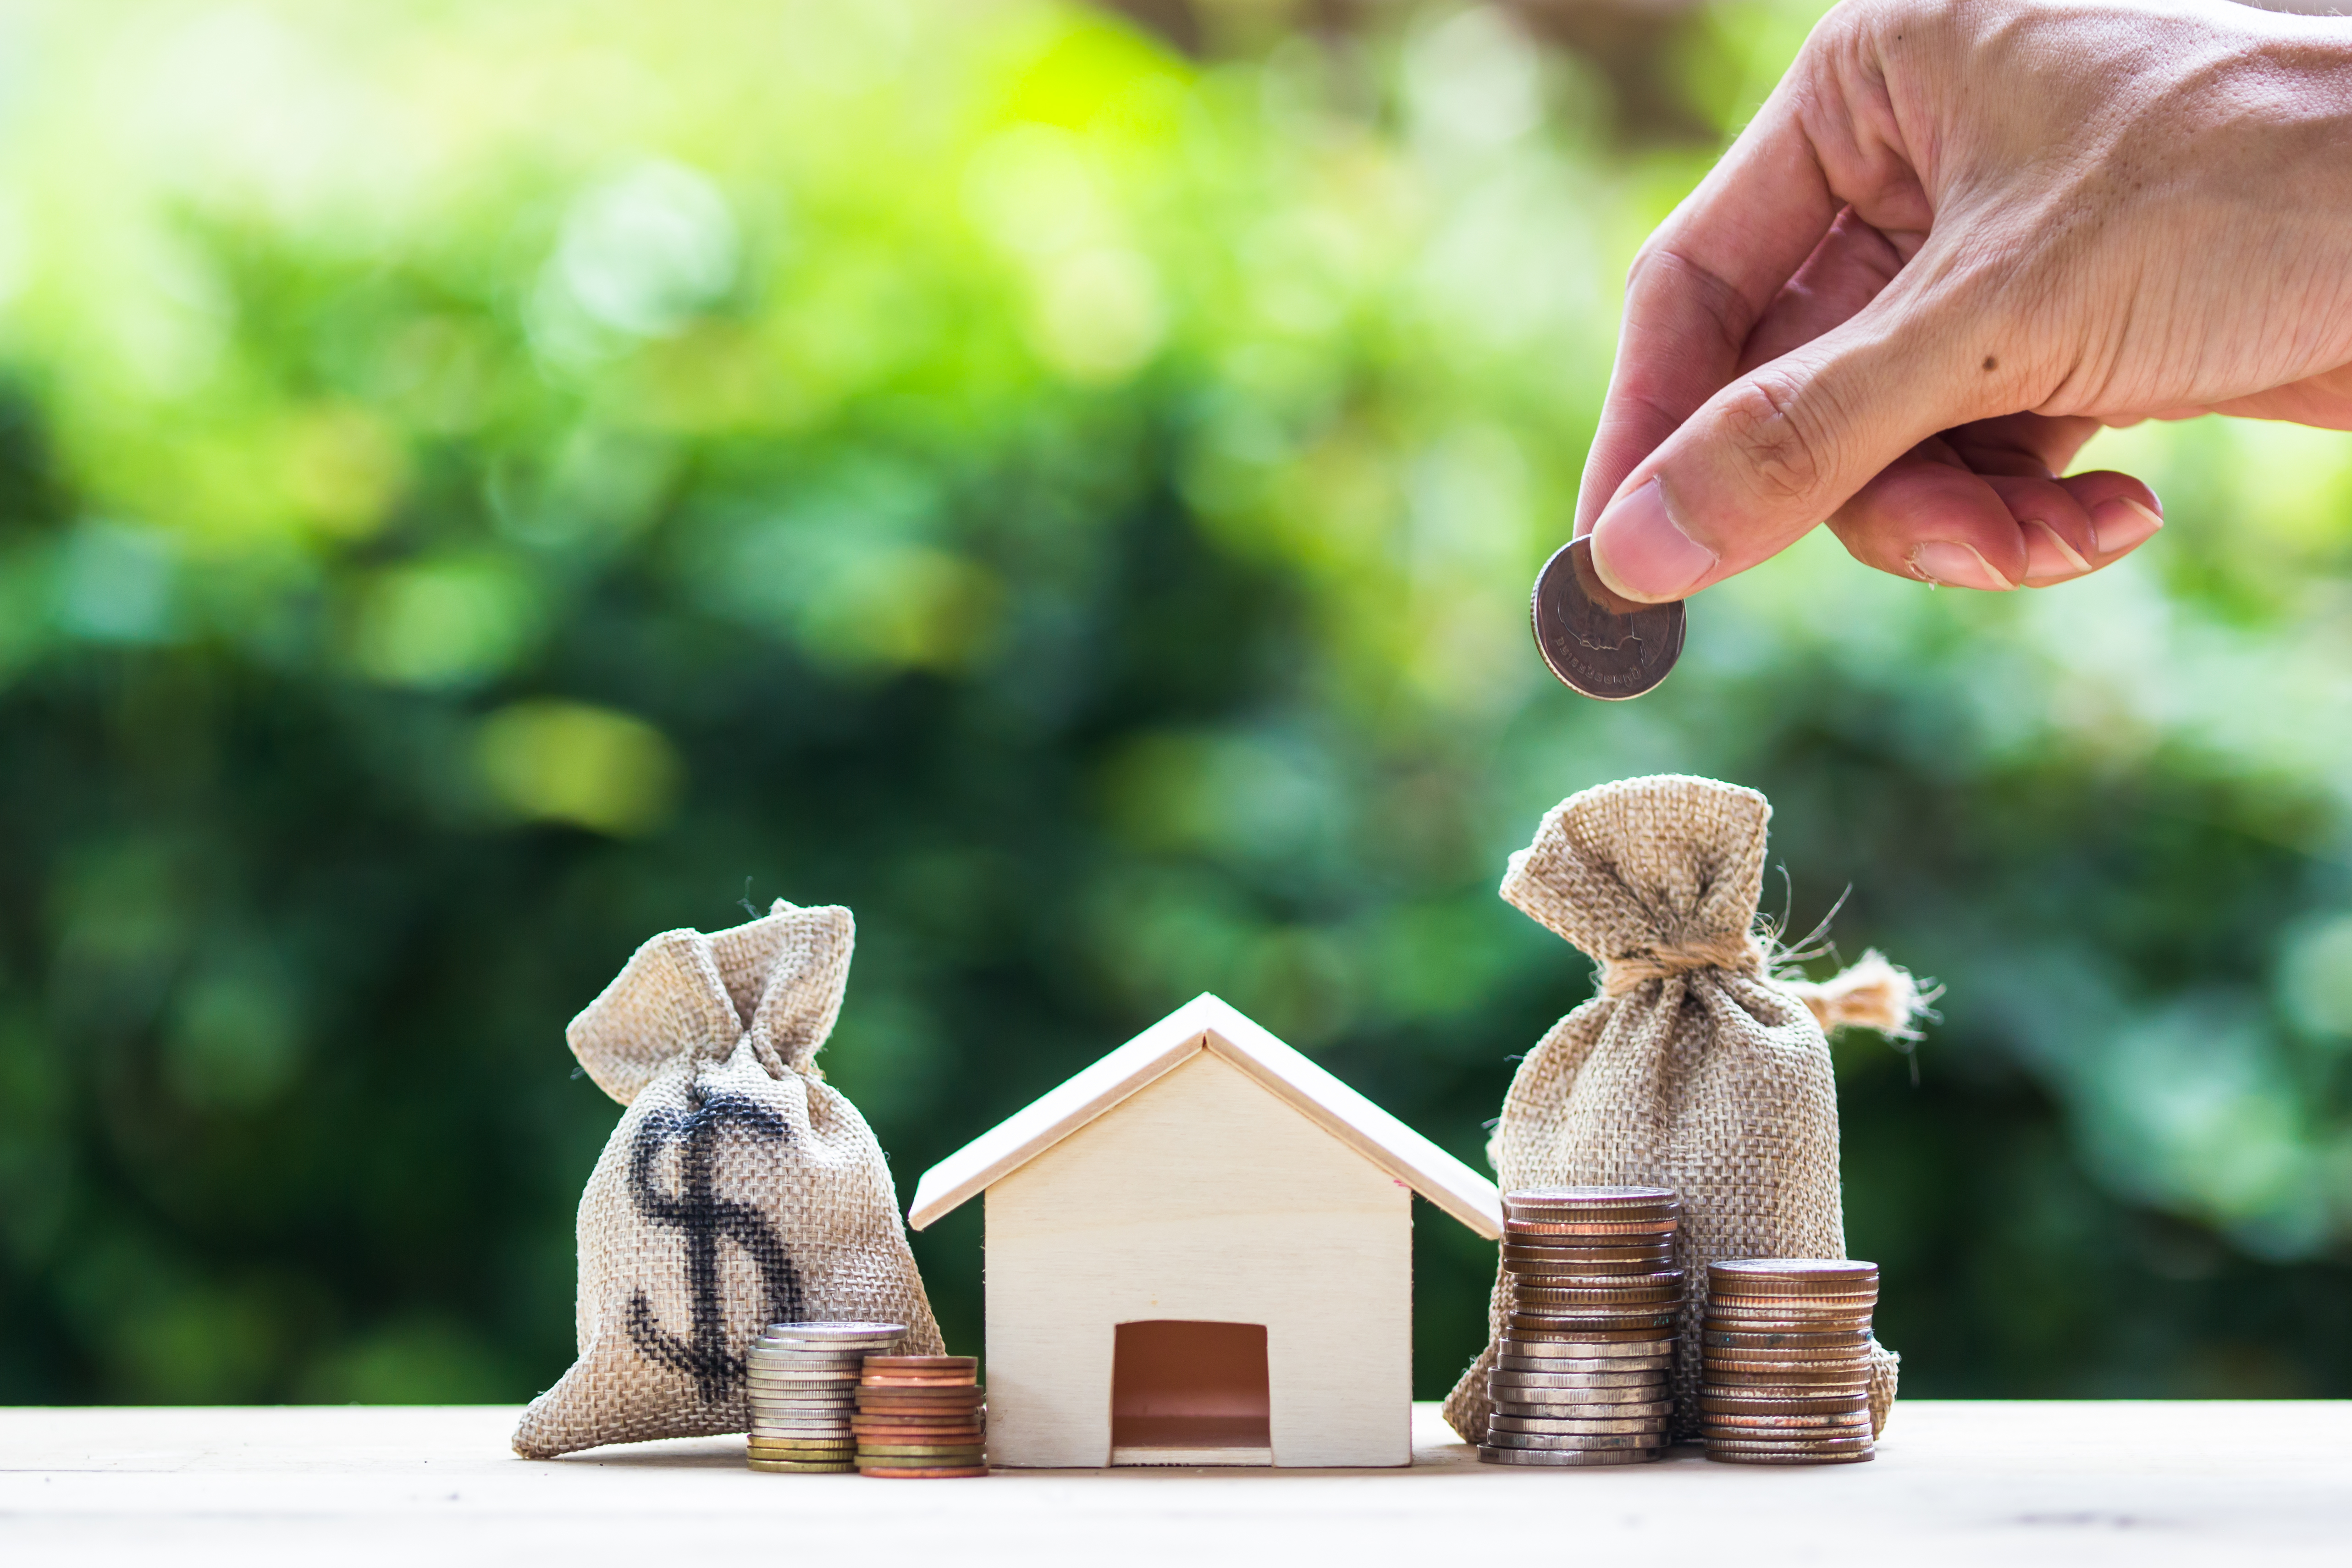 Saving money, home loan, mortgage, a property investment for future concept : A man hand putting money coin over small residence house and money bag